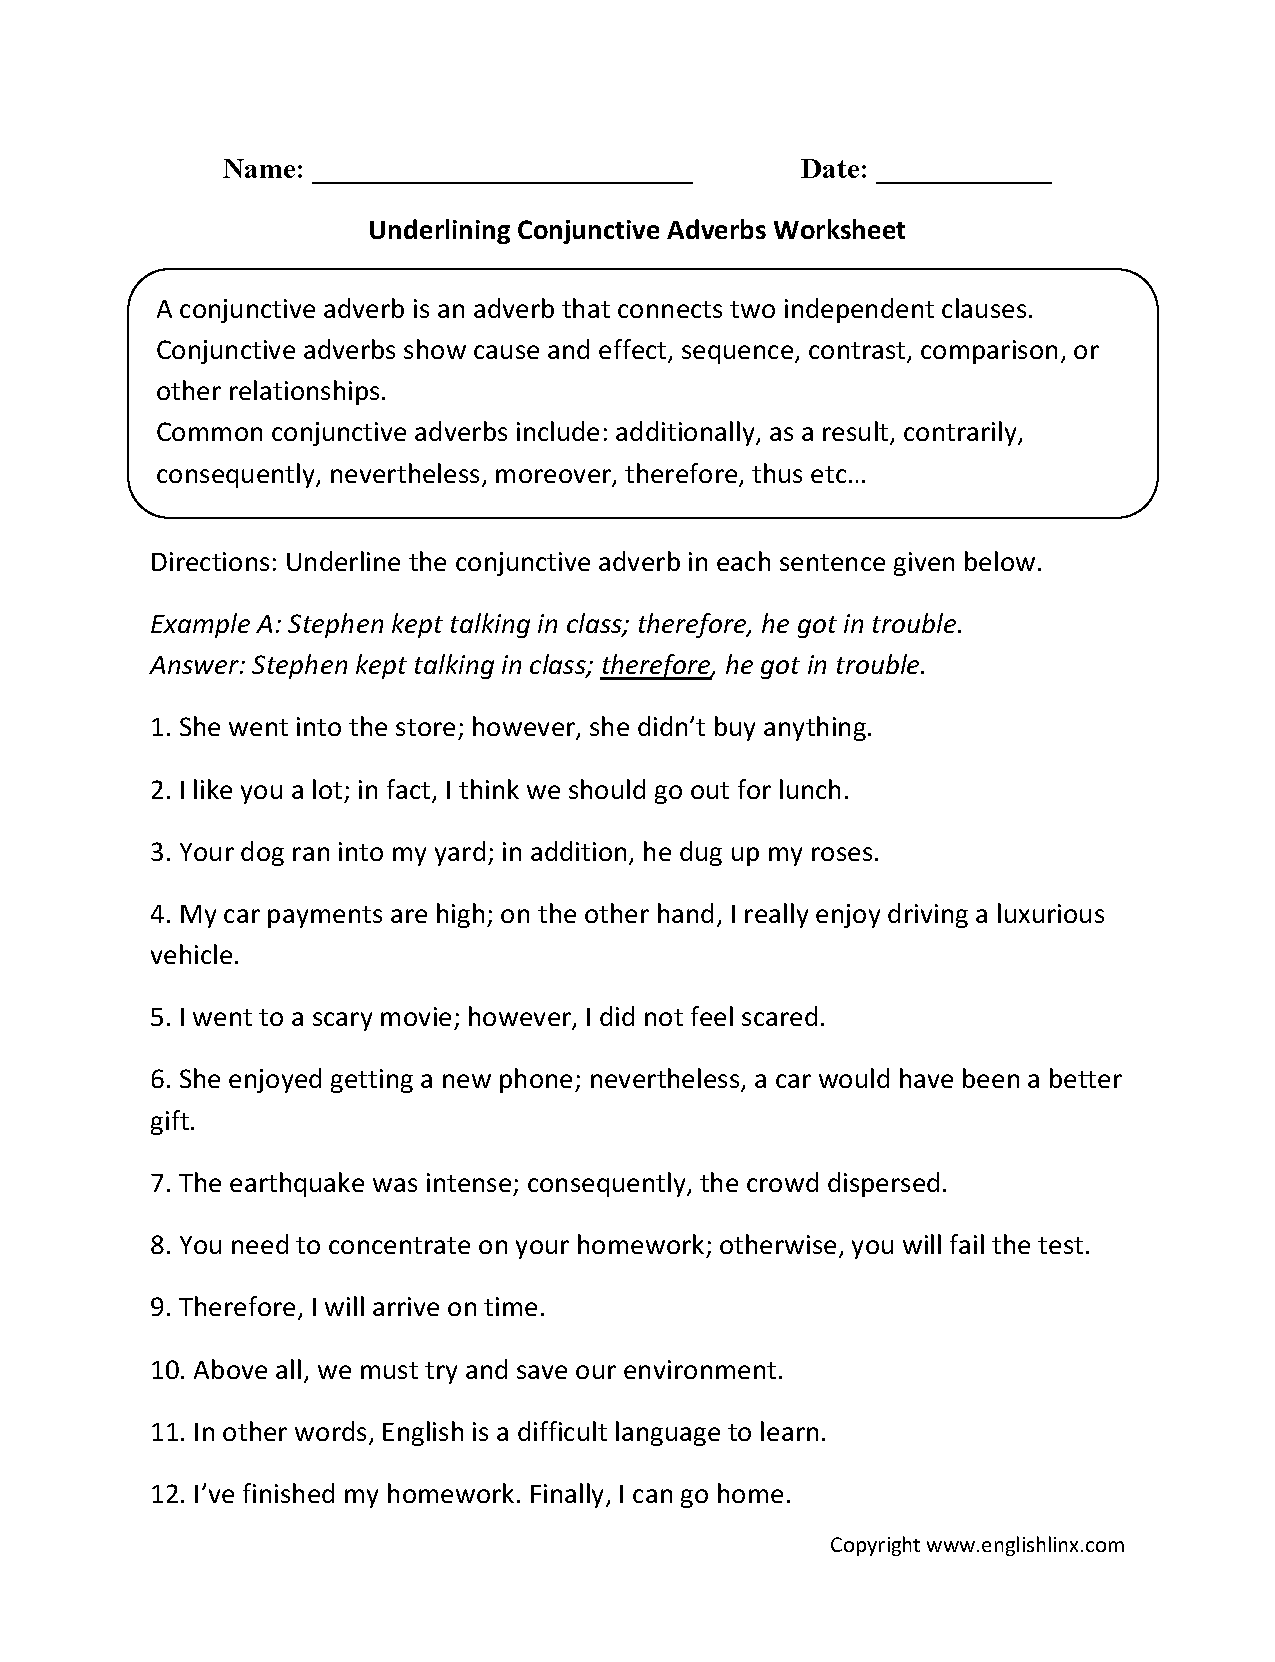 Aldiablosus  Sweet Englishlinxcom  Conjunctions Worksheets With Fascinating Worksheet With Delightful Summarizing Worksheets For Th Grade Also Grade  Math Word Problems Worksheets In Addition Doubling Worksheets Ks And Word Maze Worksheet As Well As Finding The Main Idea And Supporting Details Worksheets Additionally Maths Worksheets Fractions From Englishlinxcom With Aldiablosus  Fascinating Englishlinxcom  Conjunctions Worksheets With Delightful Worksheet And Sweet Summarizing Worksheets For Th Grade Also Grade  Math Word Problems Worksheets In Addition Doubling Worksheets Ks From Englishlinxcom